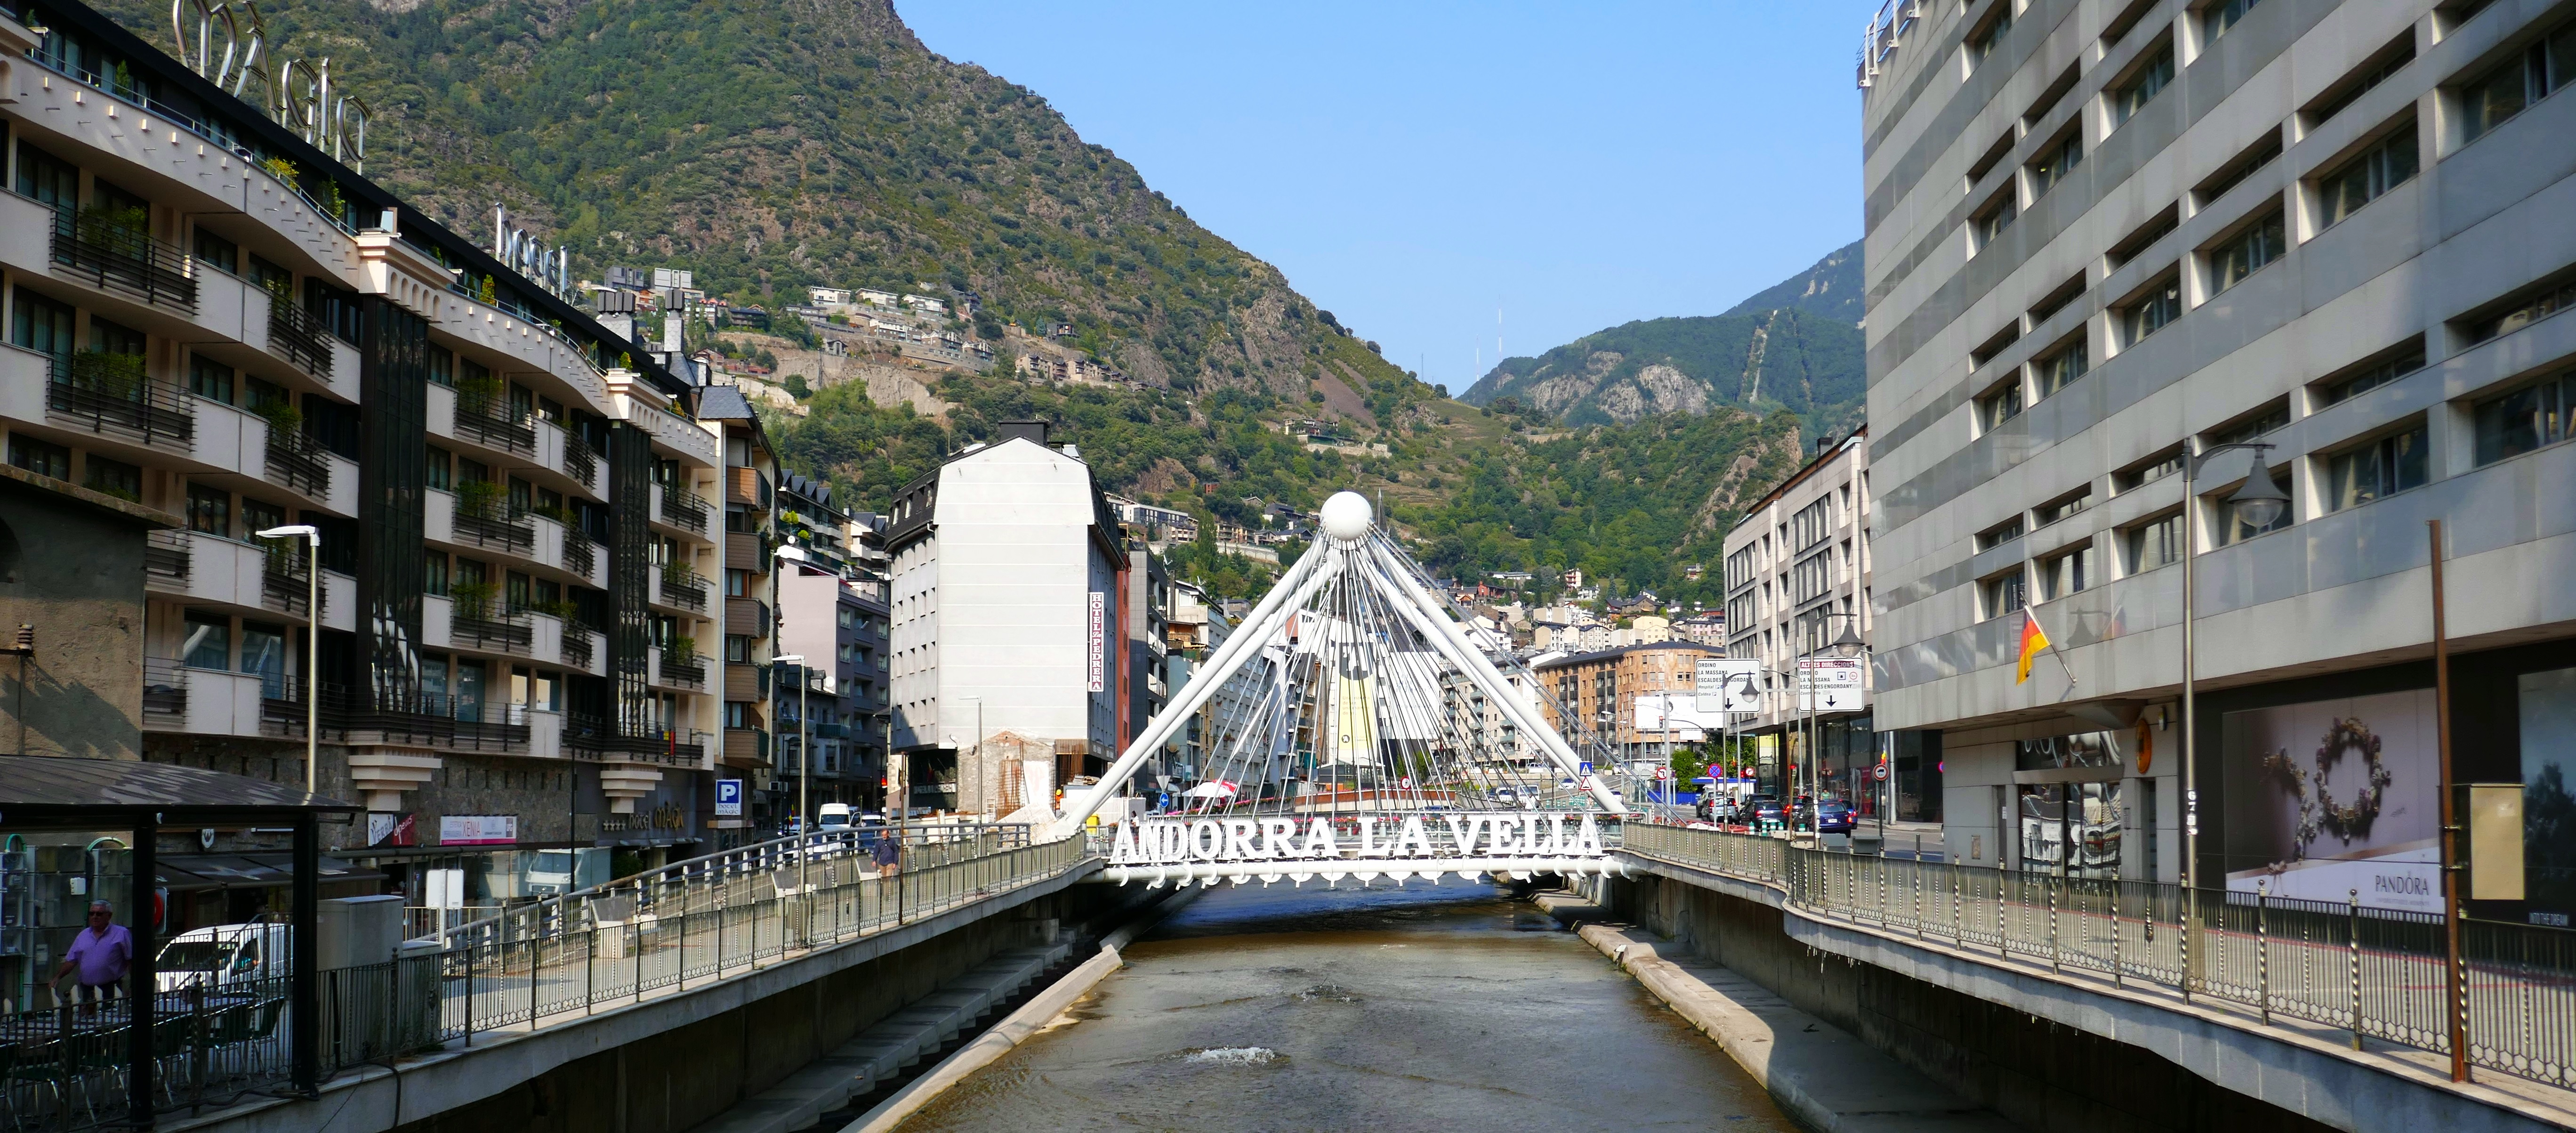 Andorra Is A Mini Country Wedged Between France And Spain High In The Pyrenees Mountains Its Known For Ski Slopes Resort Facilities Duty Free